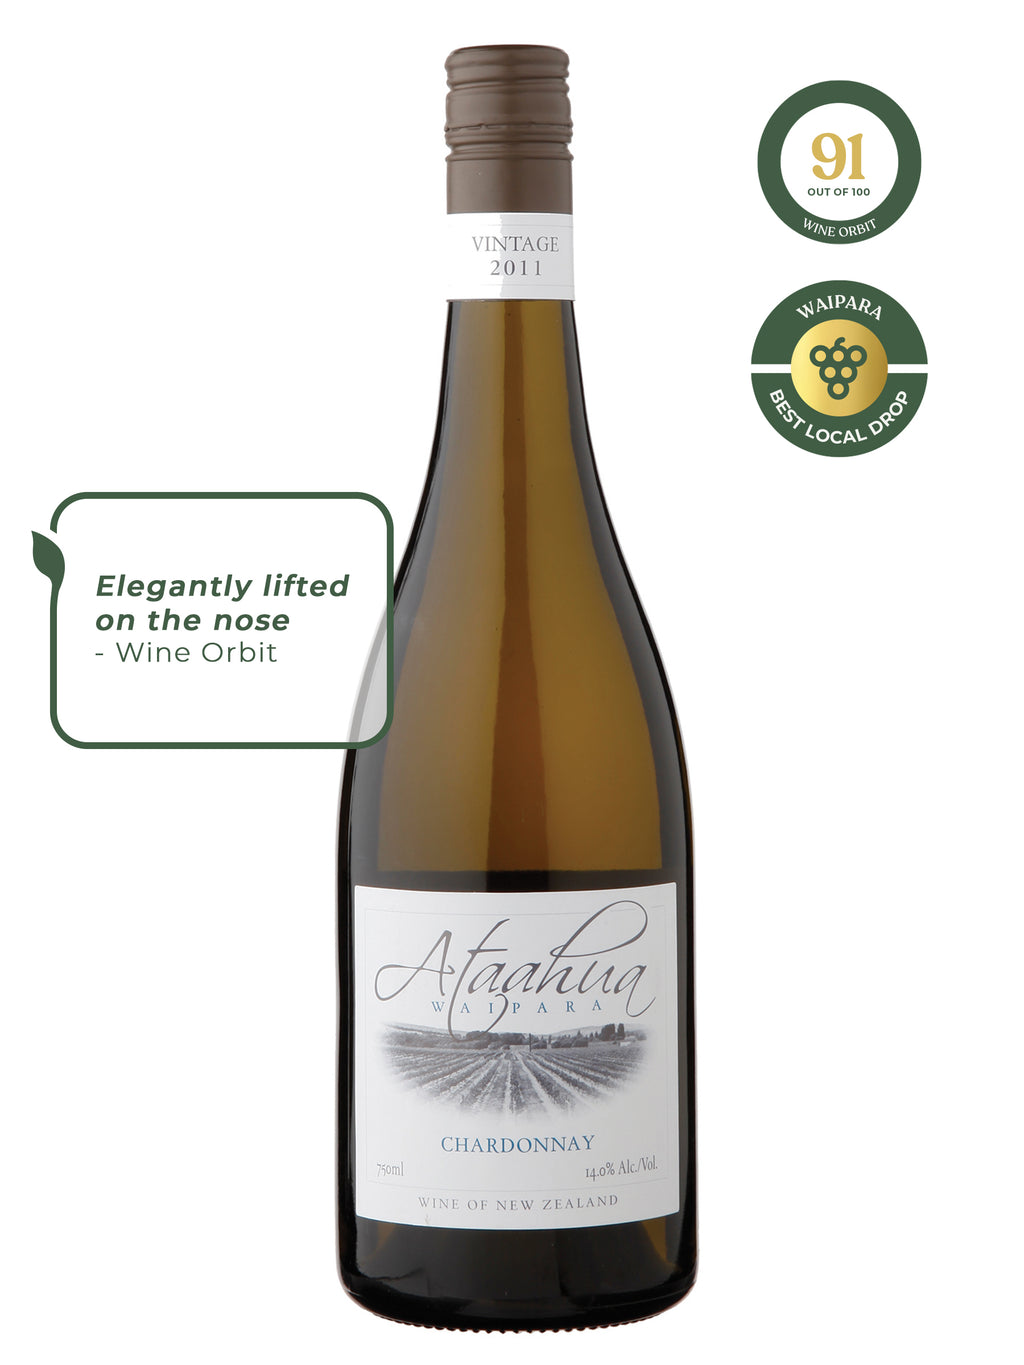 New Zealand Wine, New Zealand Wine Shops, Ataahua, Chardonnay, 2017, New Zealand Wine Shop, Online Wine Shop, New Zealand Chardonnay, Waipara Wine